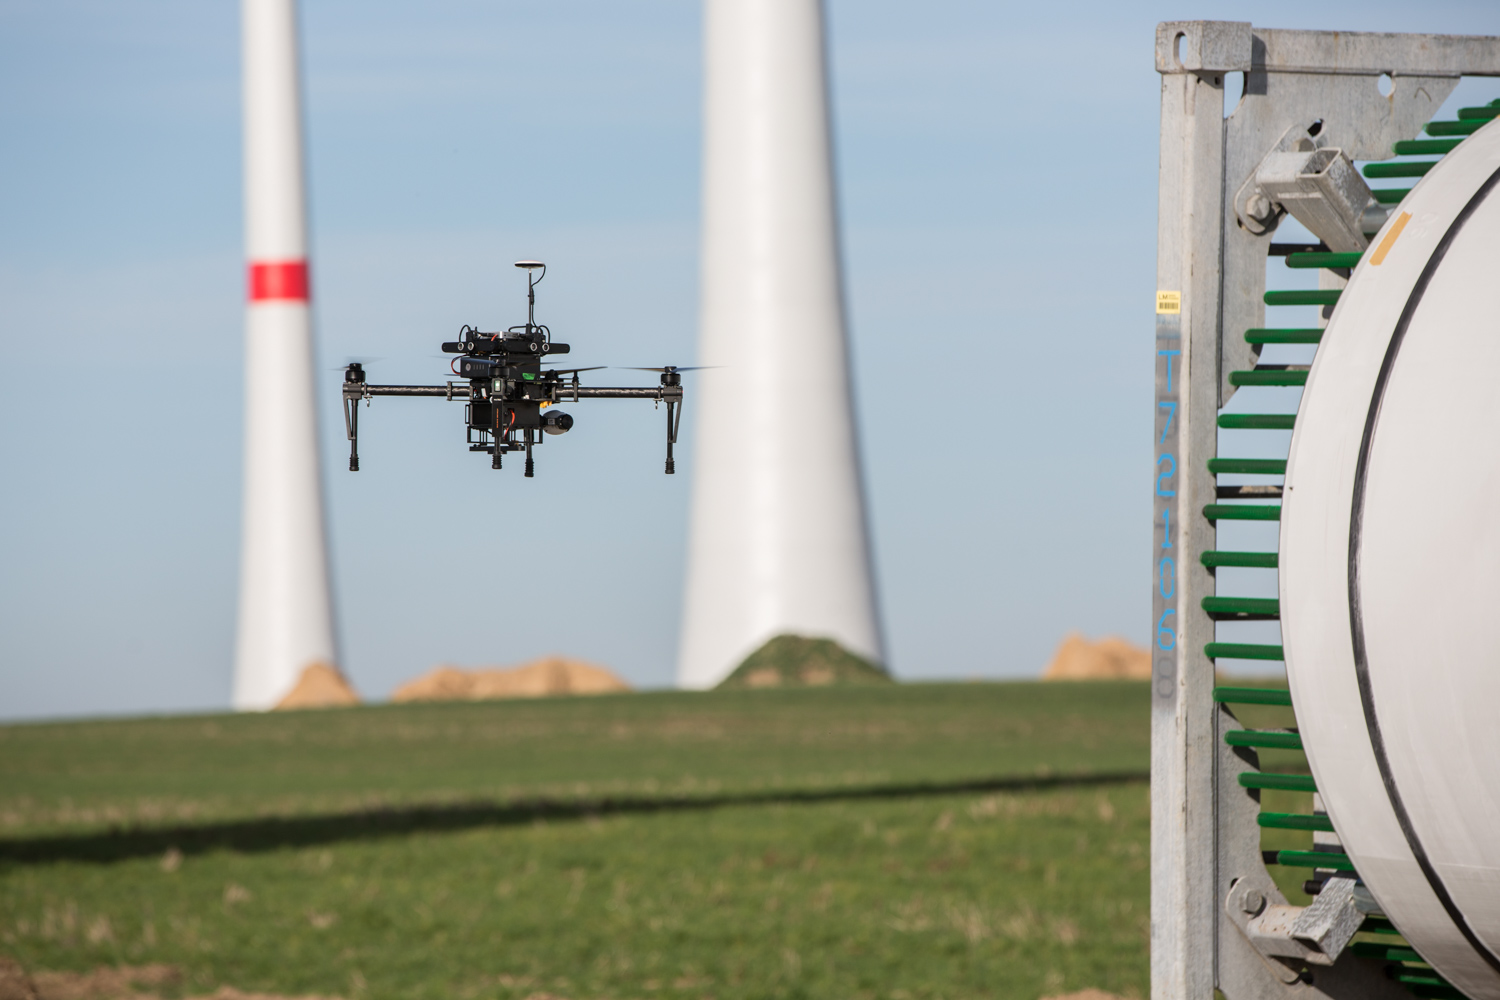 Lufthansa Forms UAS Partnership with Wind Power Company